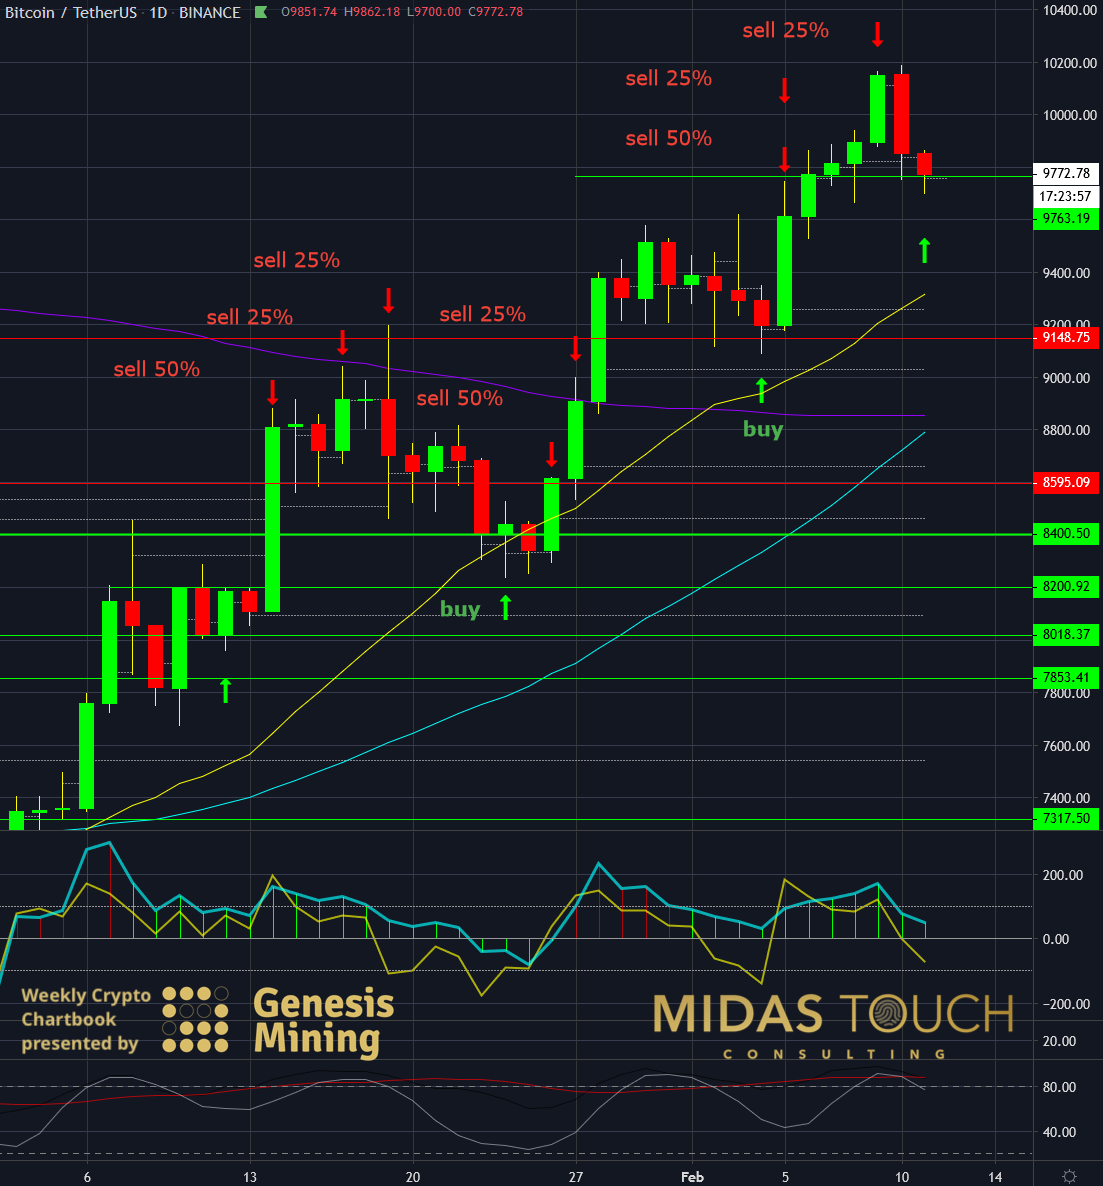 BTCUSDT daily chart as of February 11th, 2020